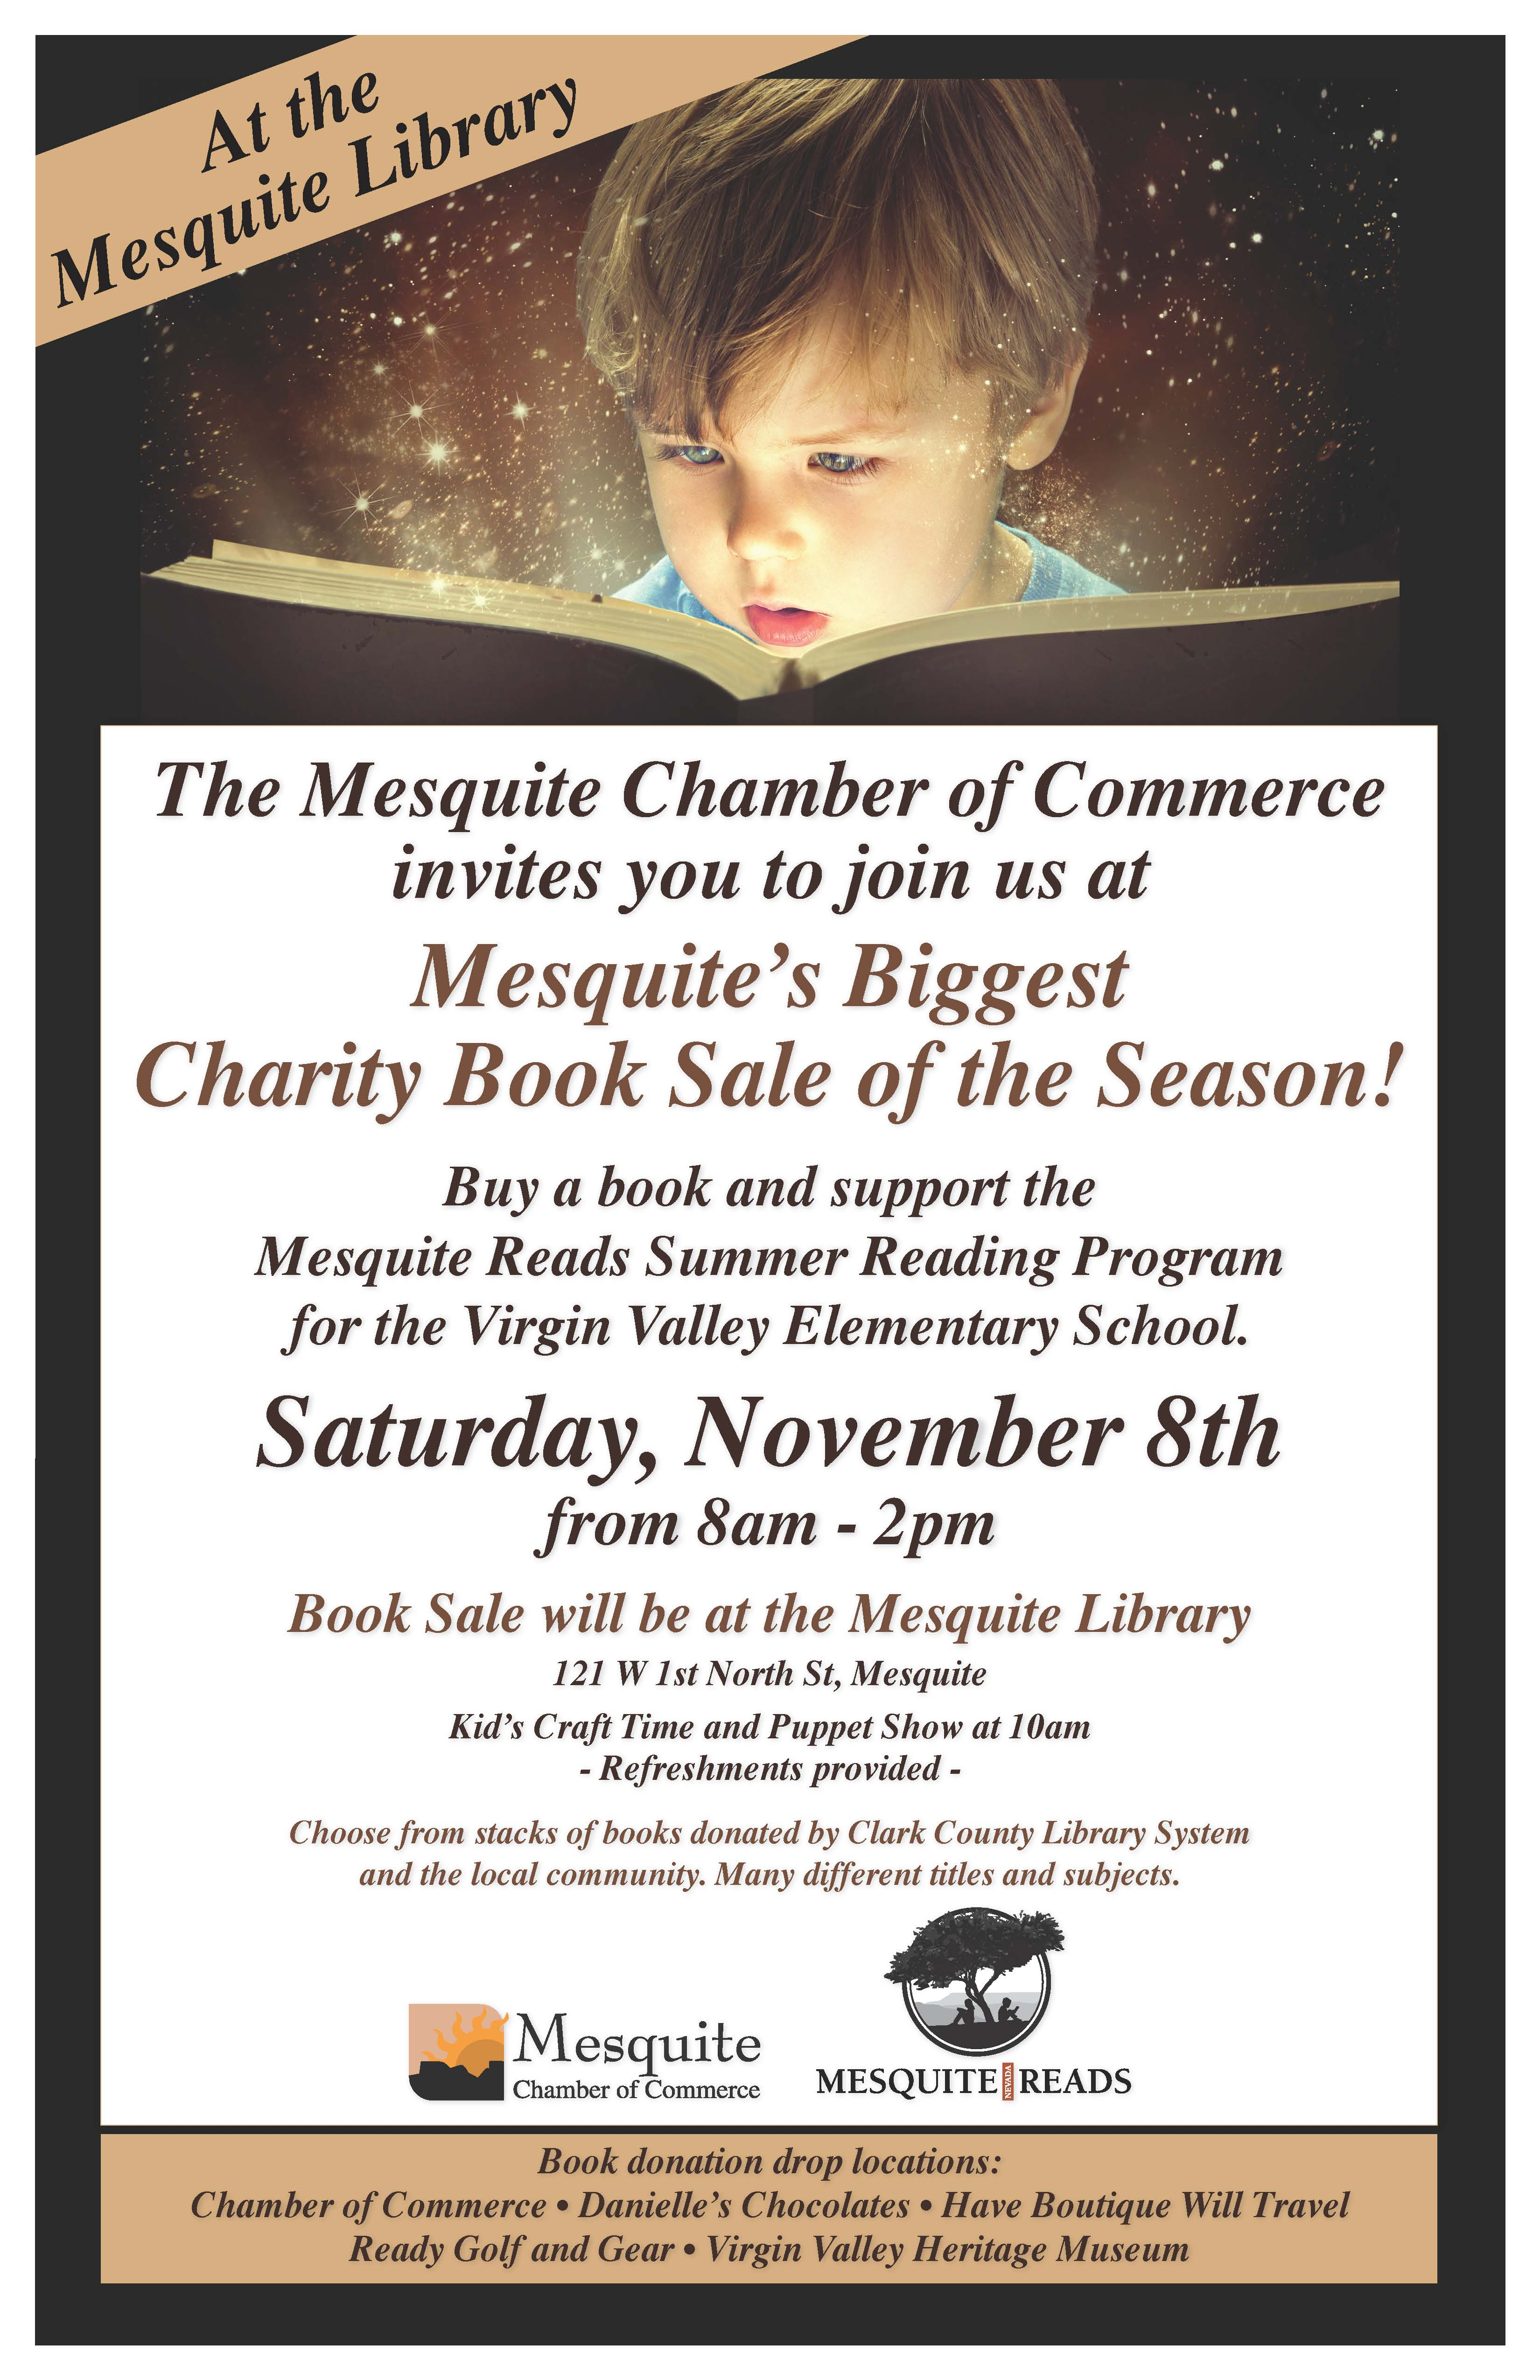 Book Sale to Benefit Mesquite Reads Program tomorrow